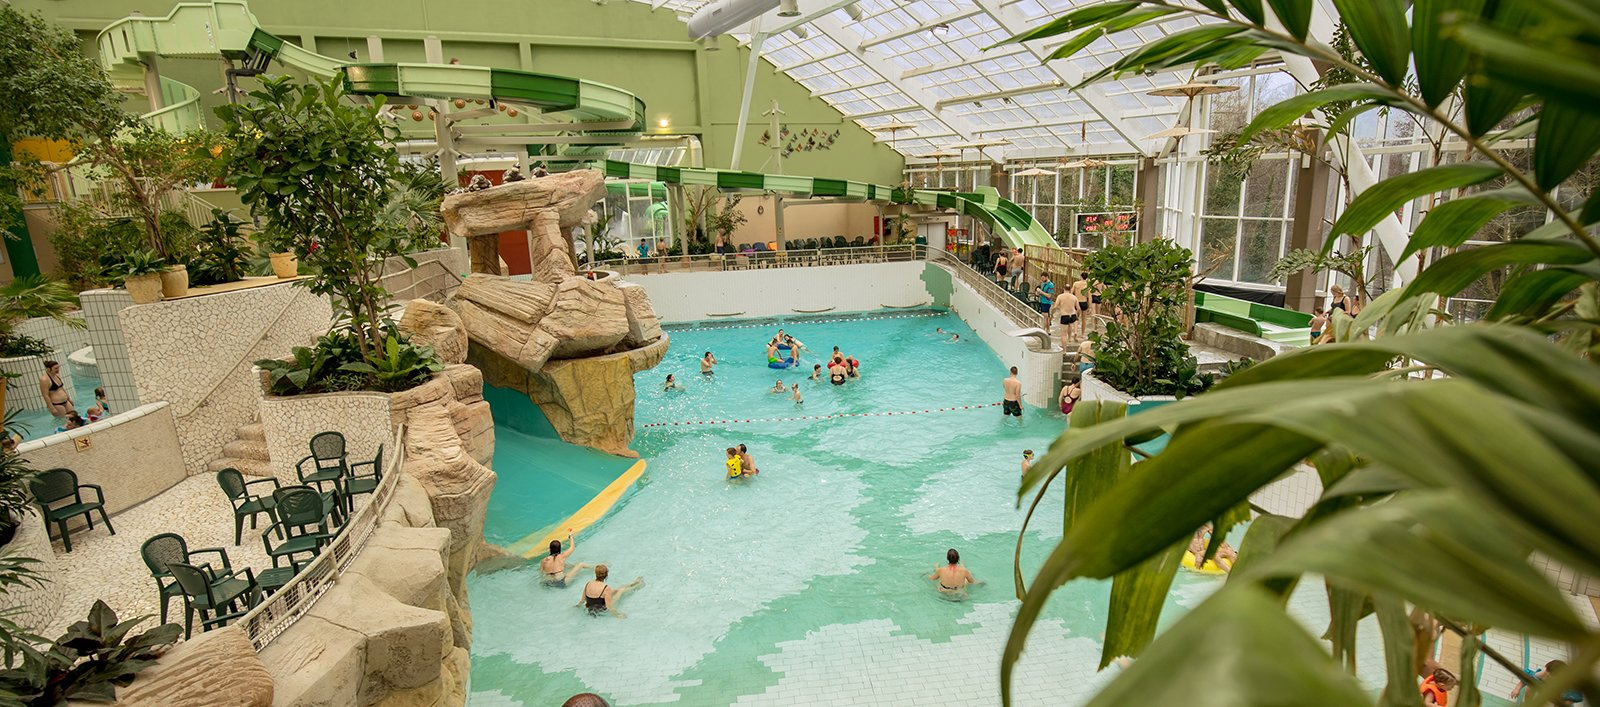 Les Ardennes destiné Center Parc Piscine